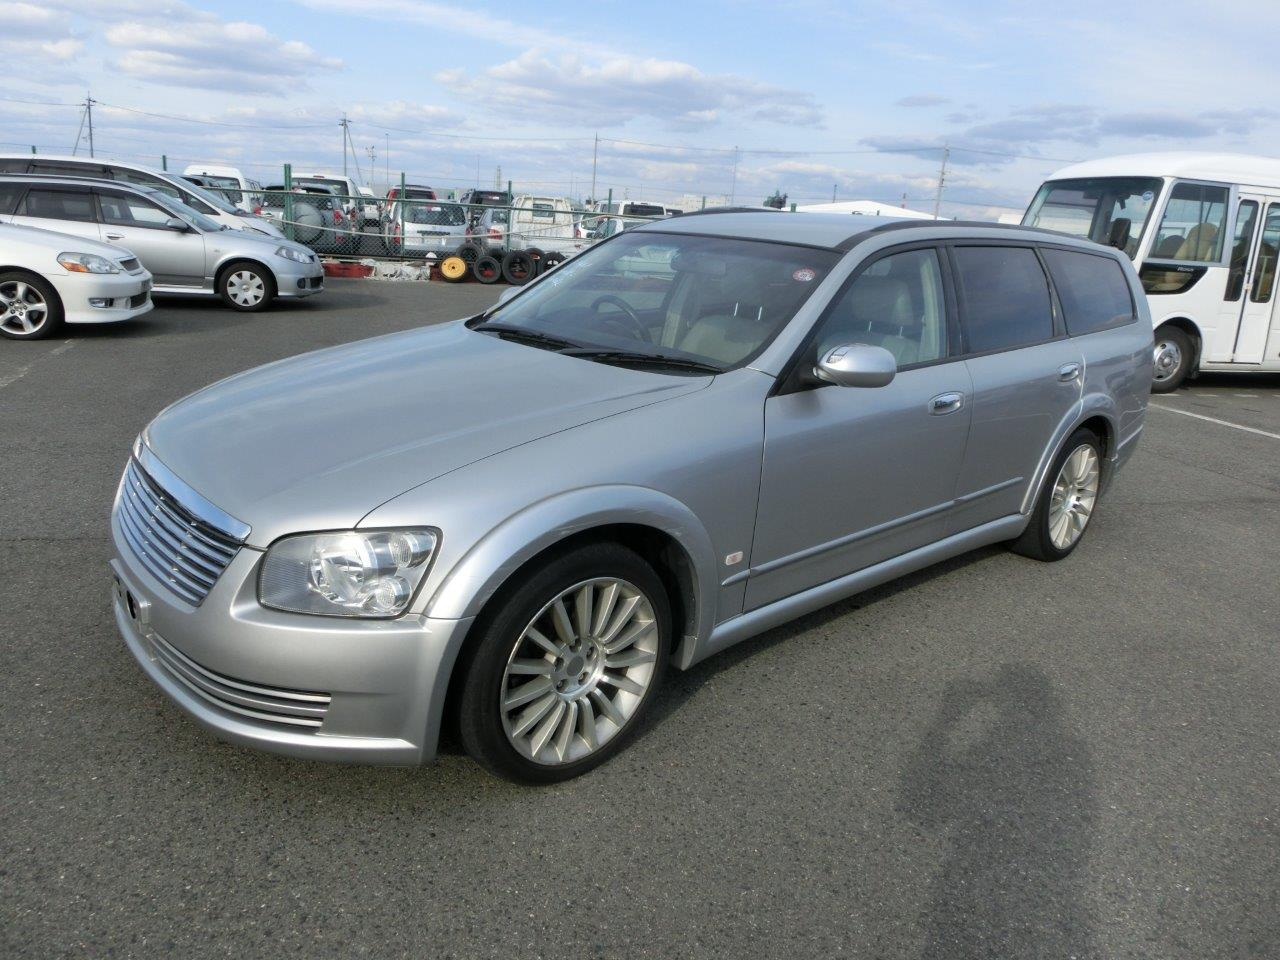 2002 Nissan Stagea AXIS